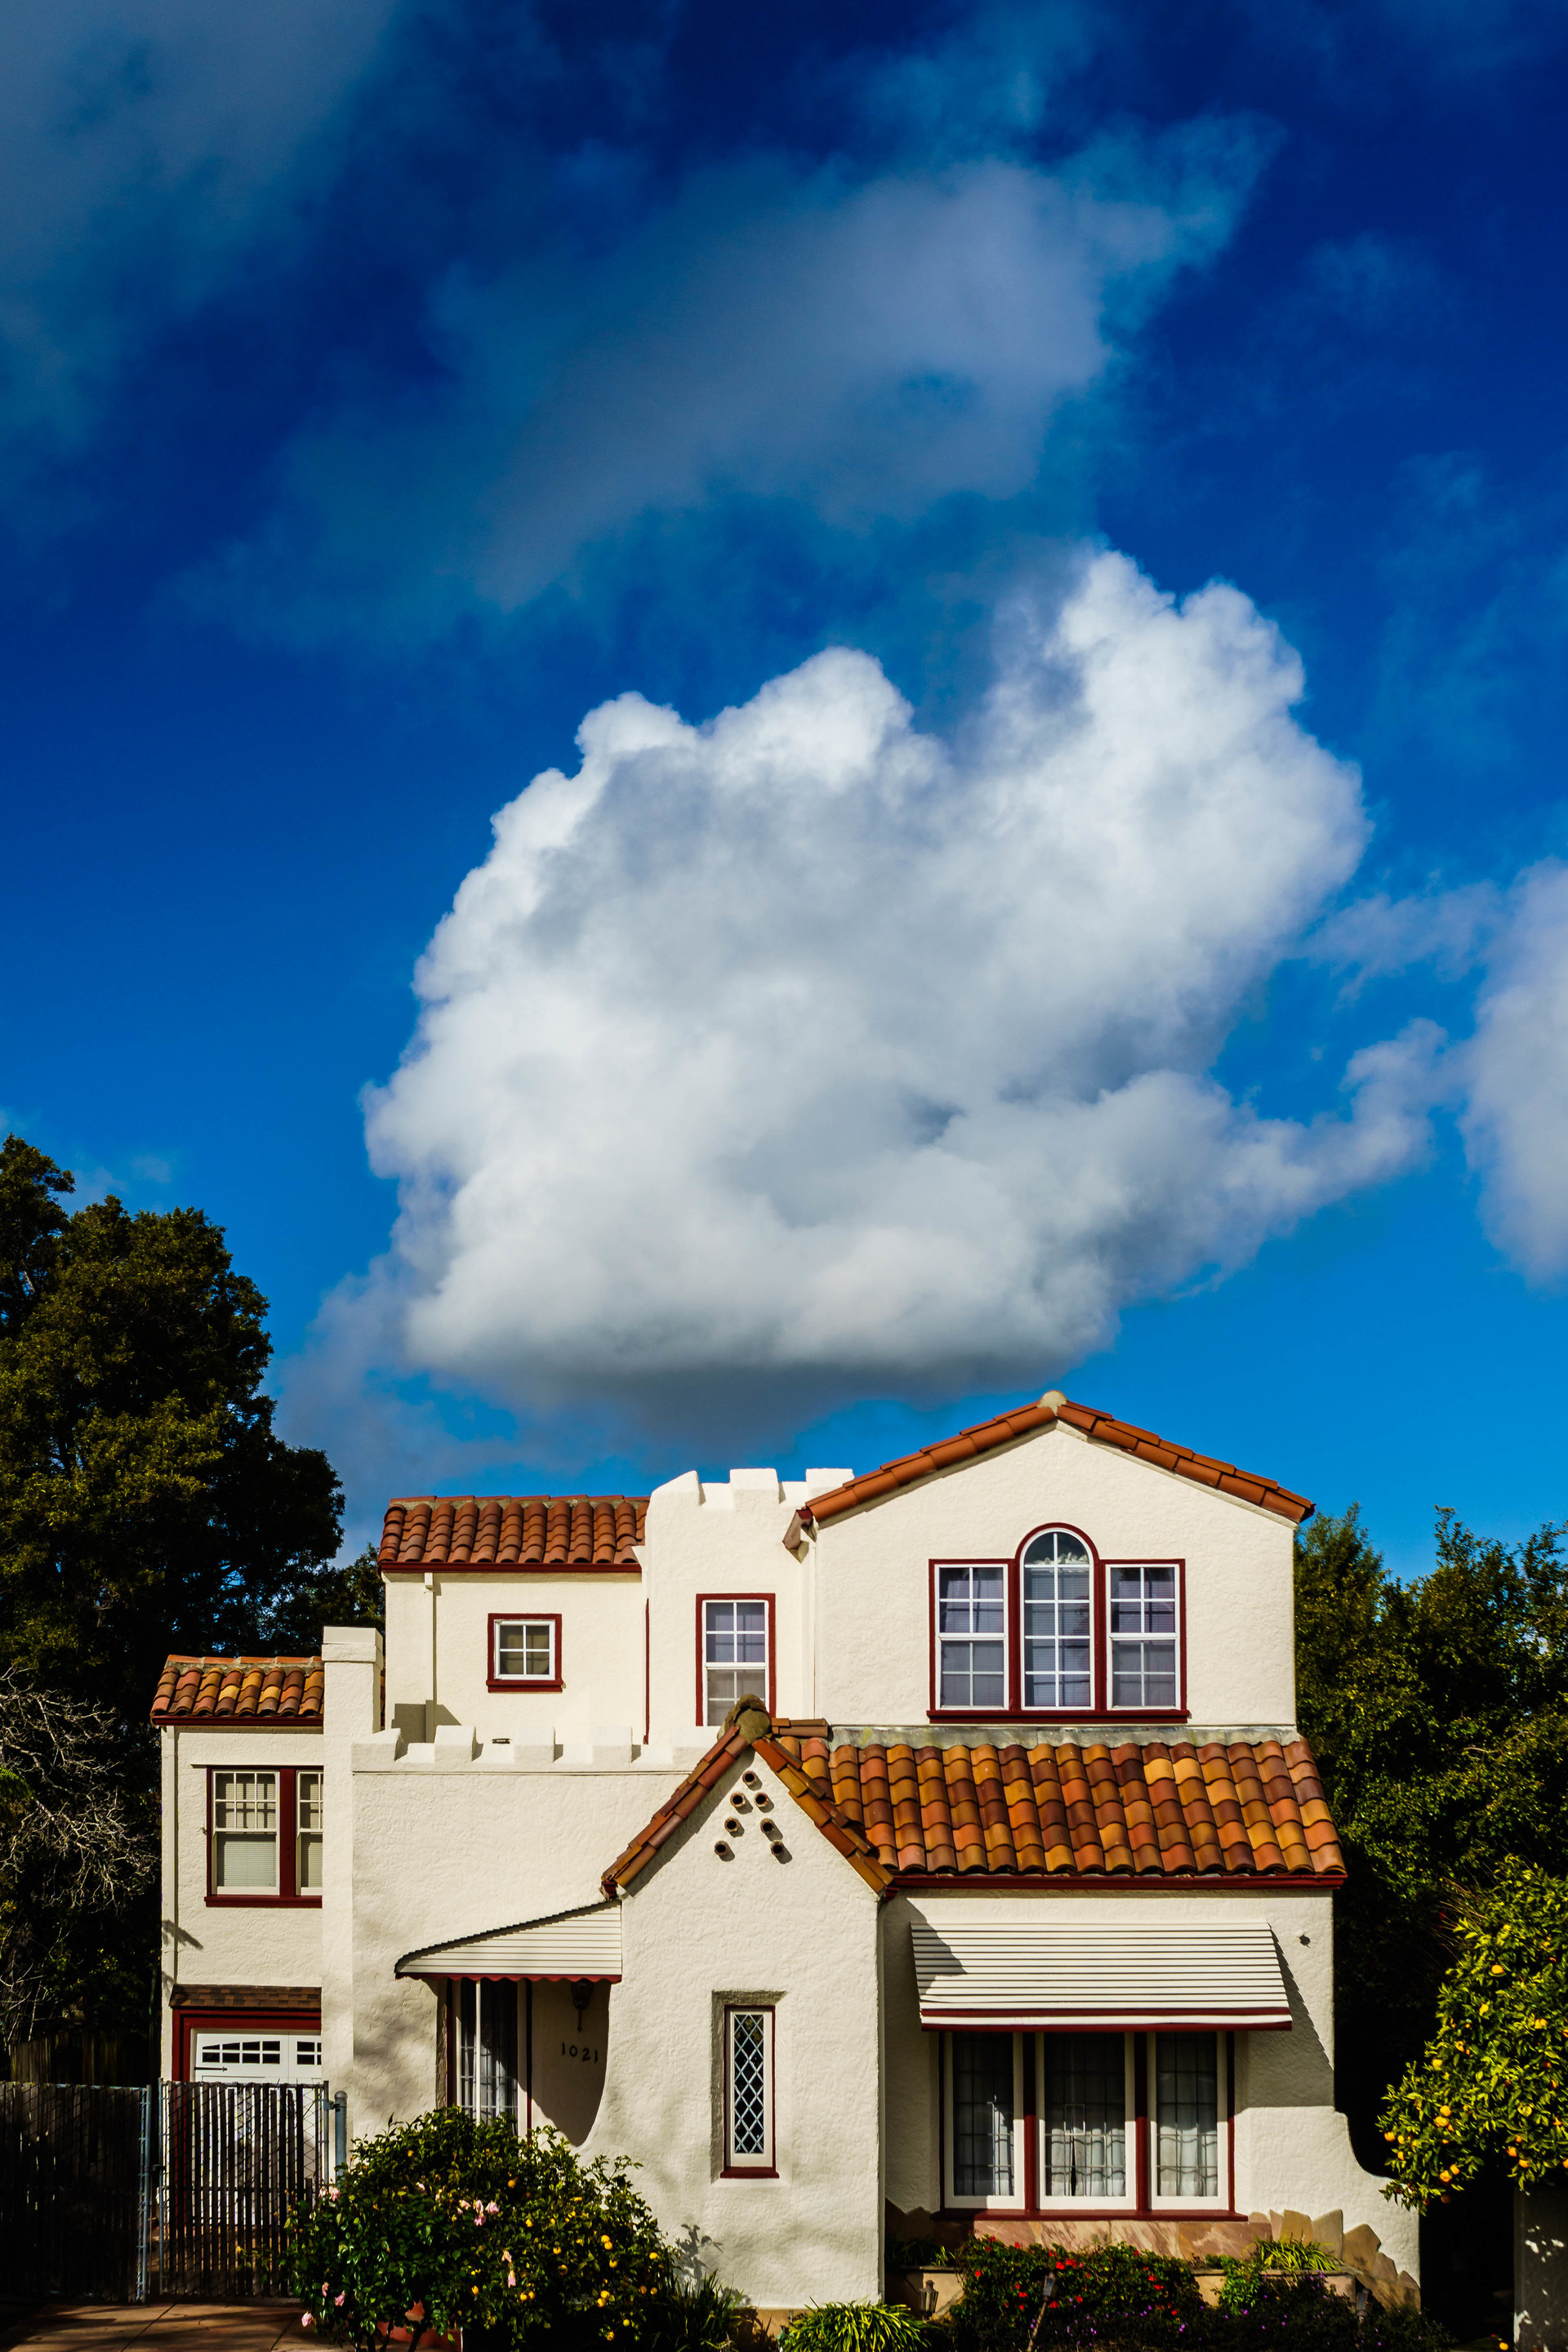 View of a house against sky